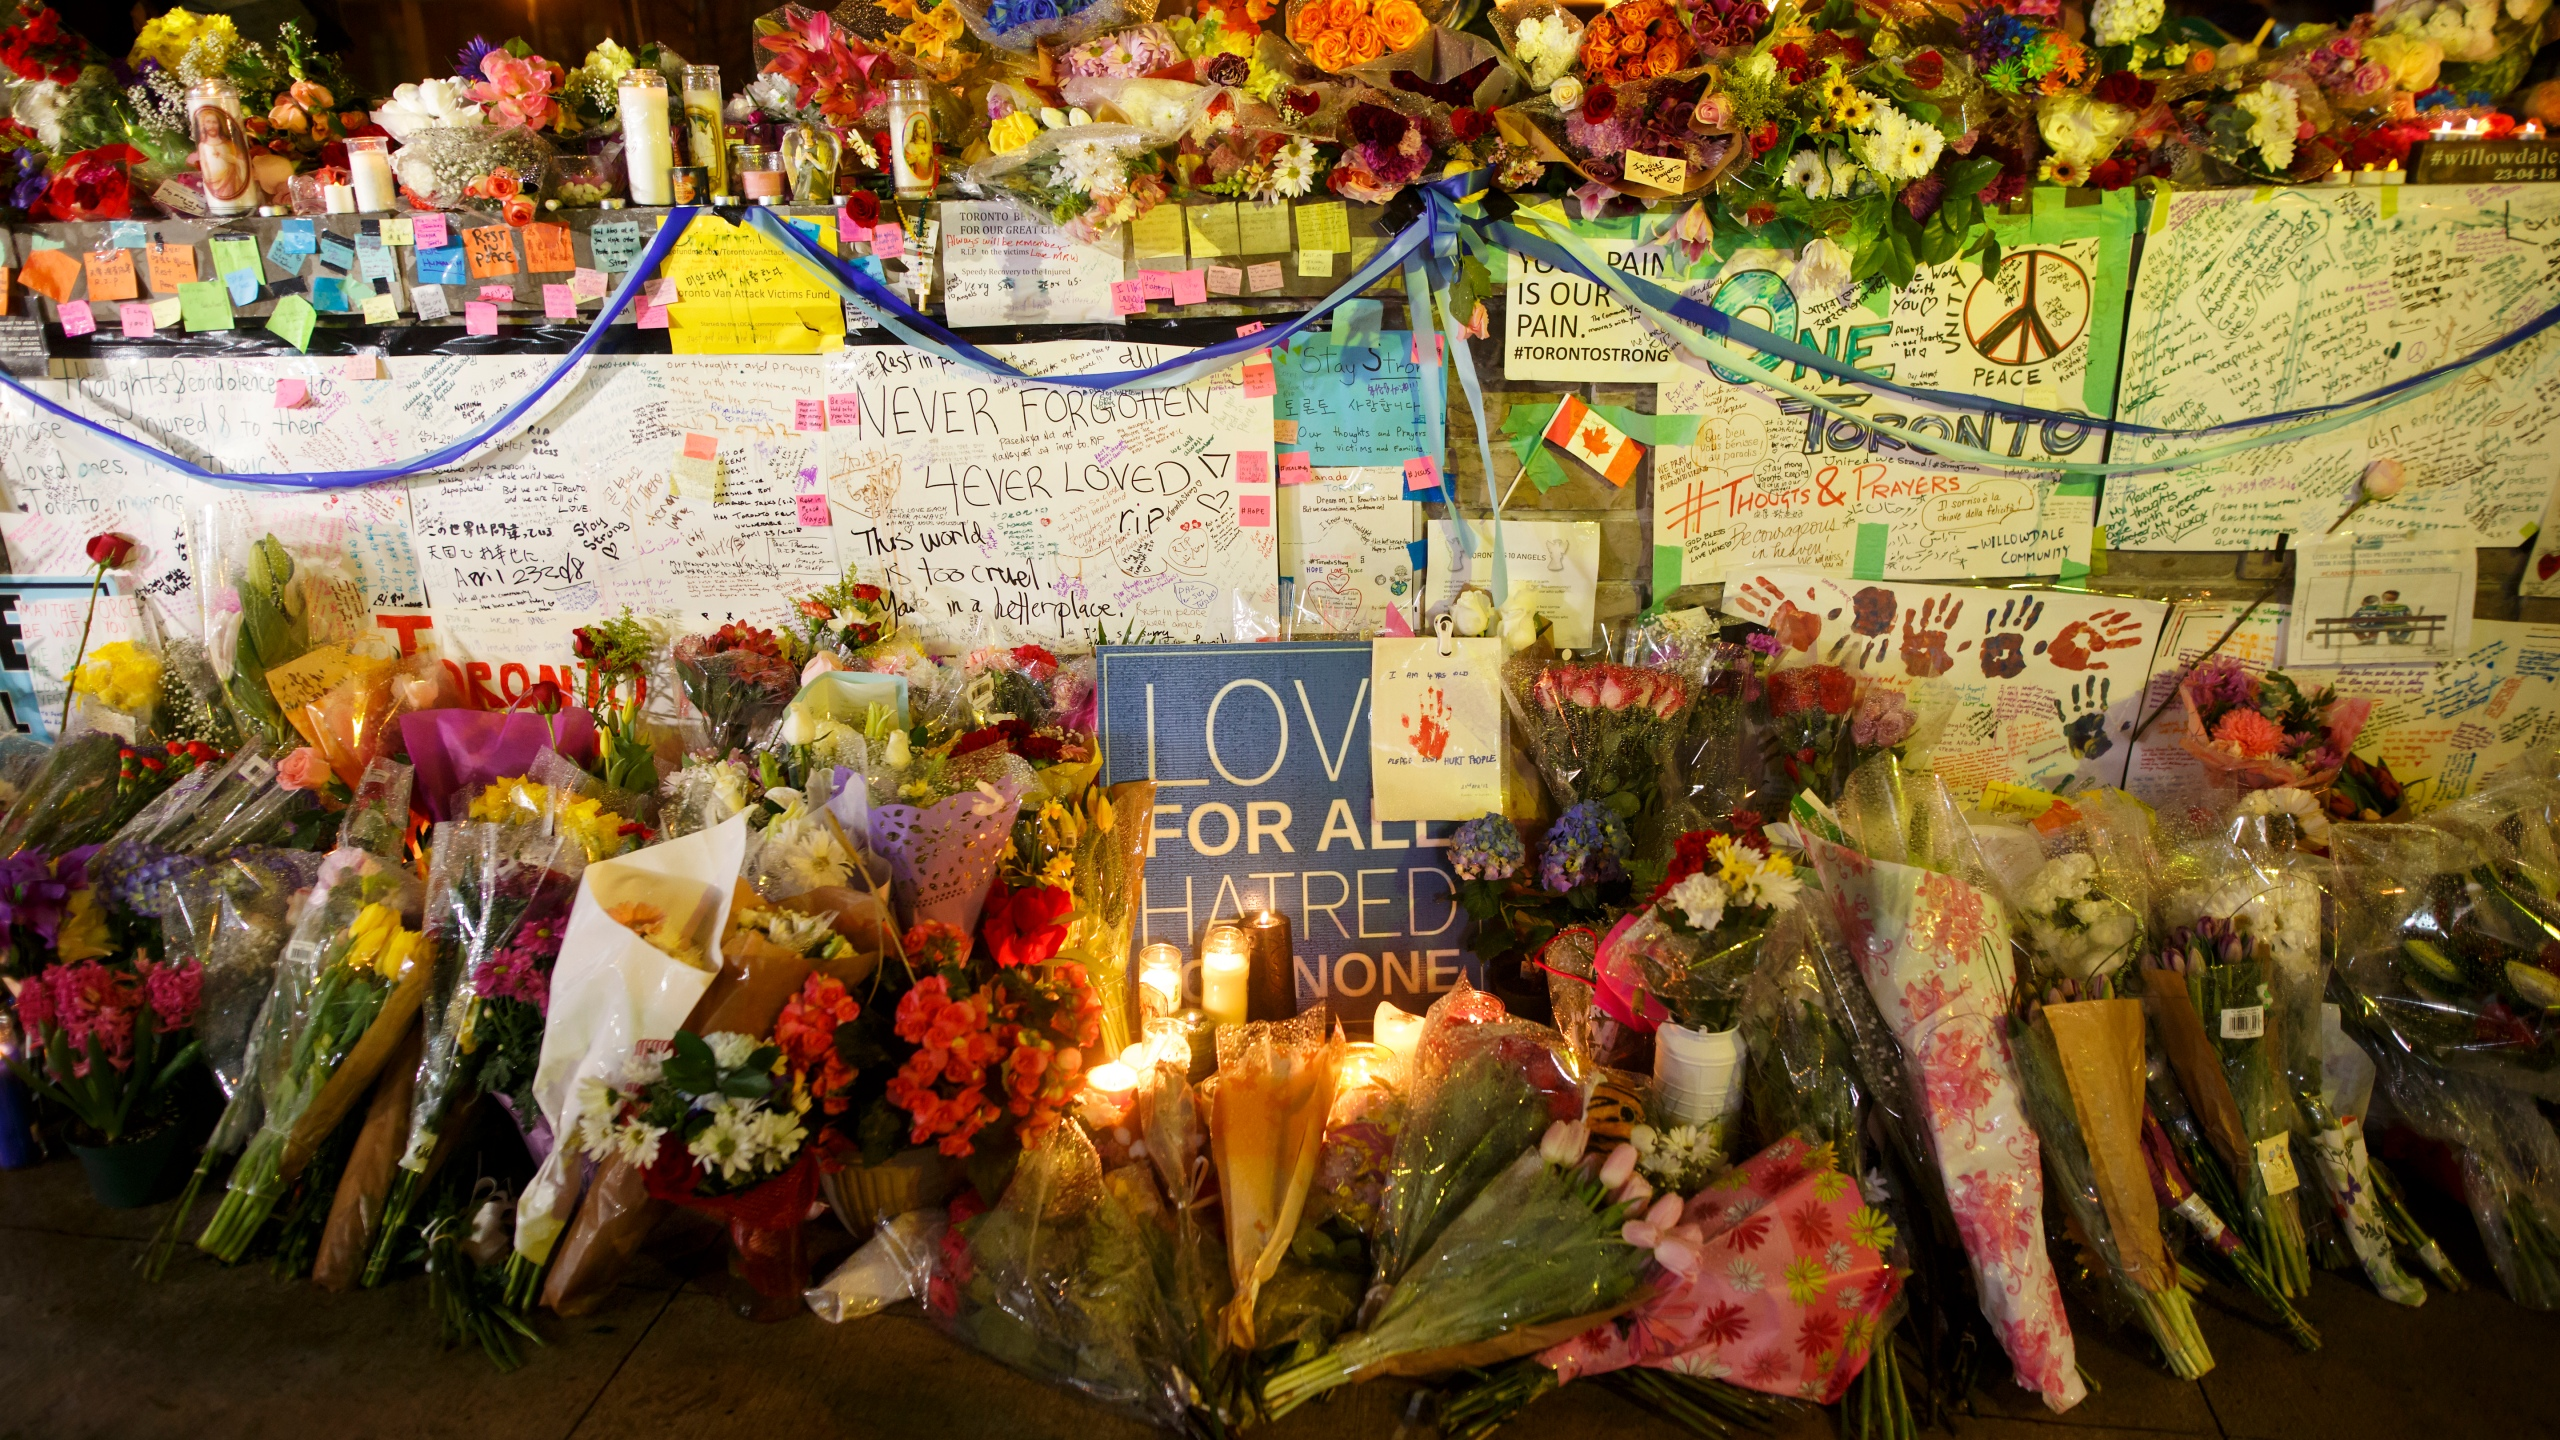 Flowers, cards, and words of sympathy adorn a makeshift memorial for victims of the mass killing on April 24, 2018 in Toronto, Canada. (Credit: Cole Burston/Getty Images)